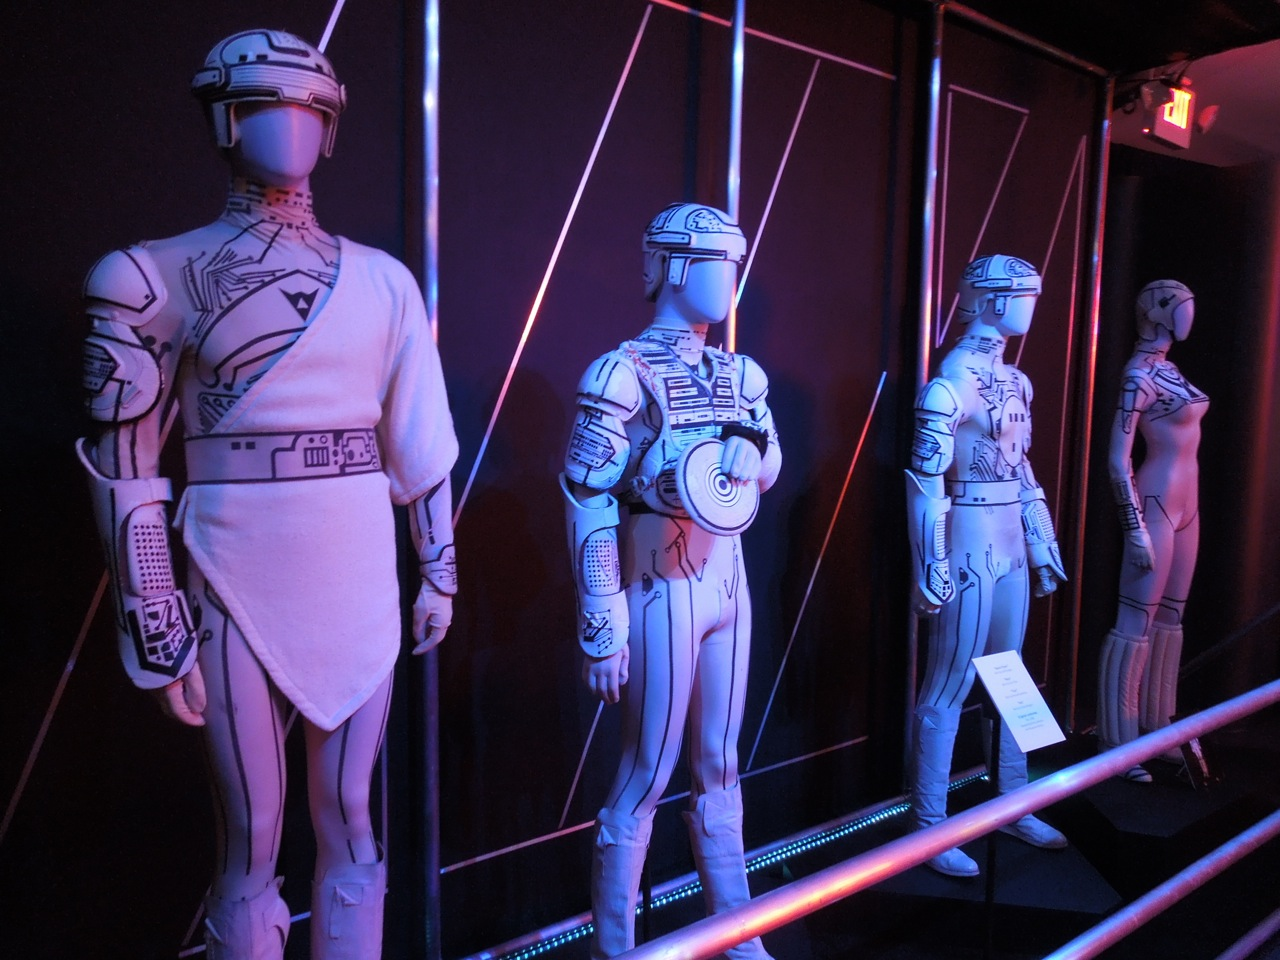 1982 Tron movie costume exhibit & Hollywood Movie Costumes and Props: Original 1982 Tron movie ...